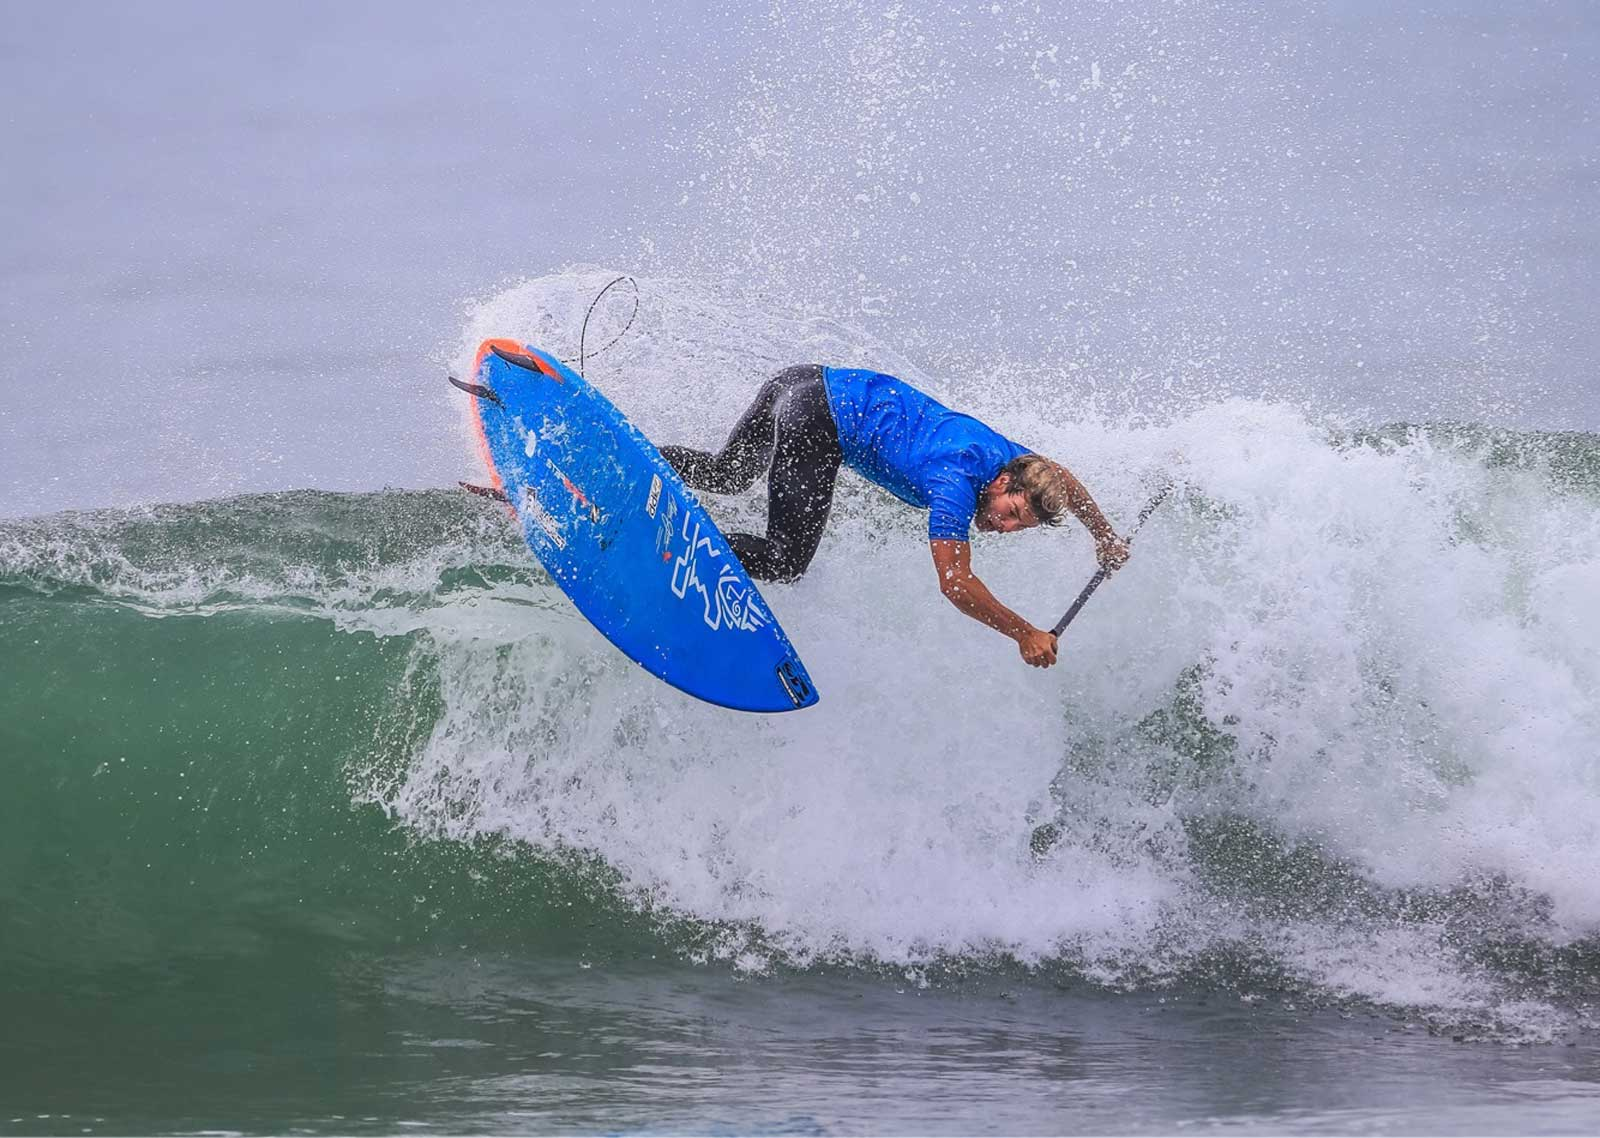 Zane's-Double-Win-at-the-Ventura-Paddlesurf-and-Hydrofoil-Championships-reverse-air-1600